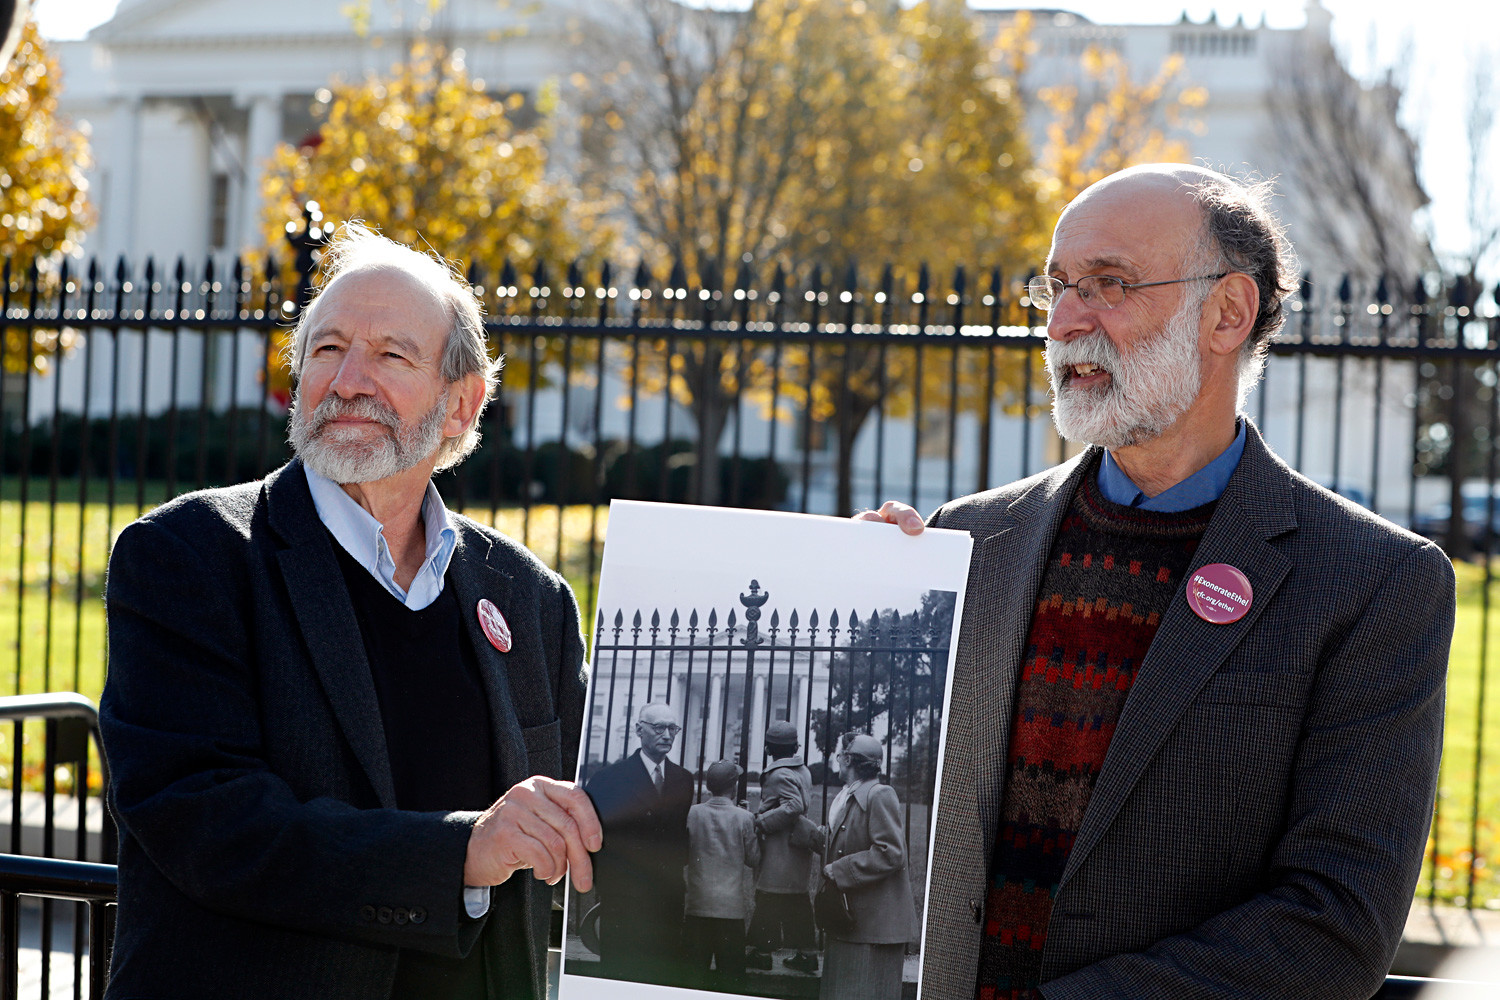 Michael, left, and Robert Meeropol, the sons of Ethel Rosenberg, pose similar to an old photograph of them, before they attempt to deliver a letter to President Barack Obama in an effort to obtain a exoneration for their mother Ethel Rosenberg, 2016.